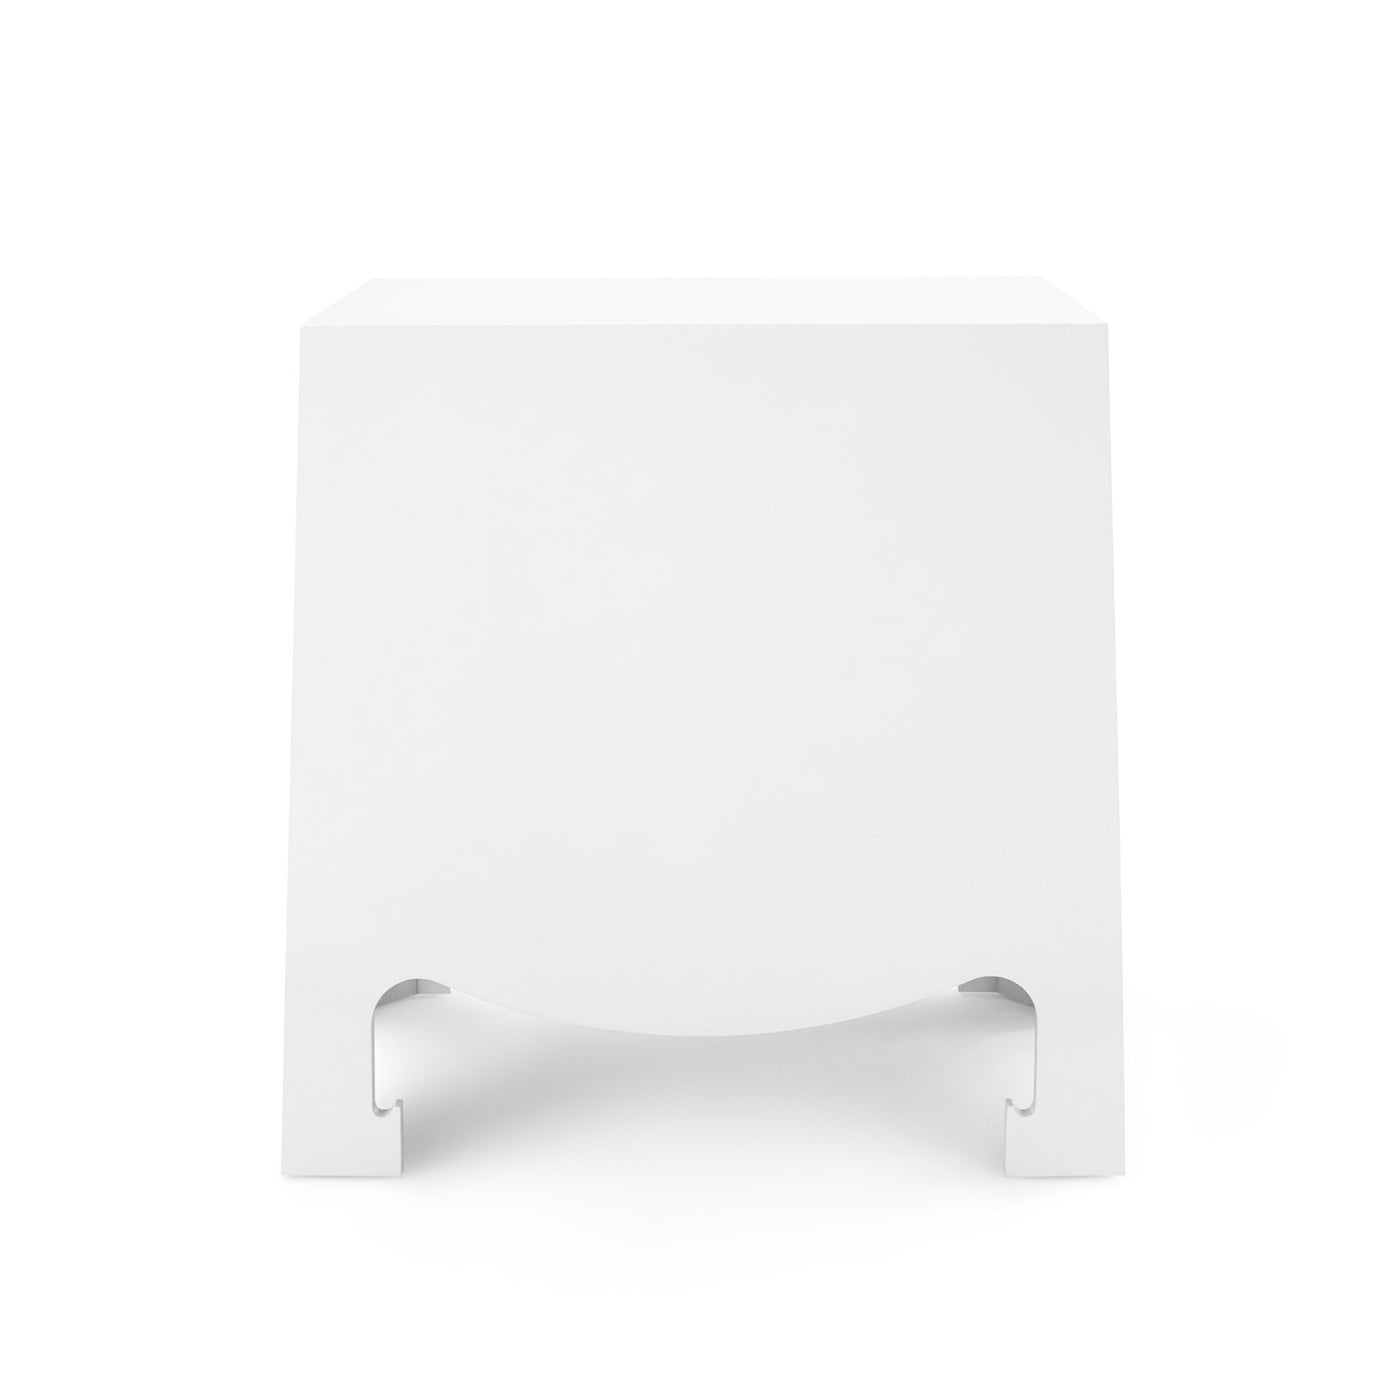 Bungalow 5 Jacqui 3 Drawer Side Table White JAC-130-09 Back bed side table, bedroom side table, modern side table, white side table